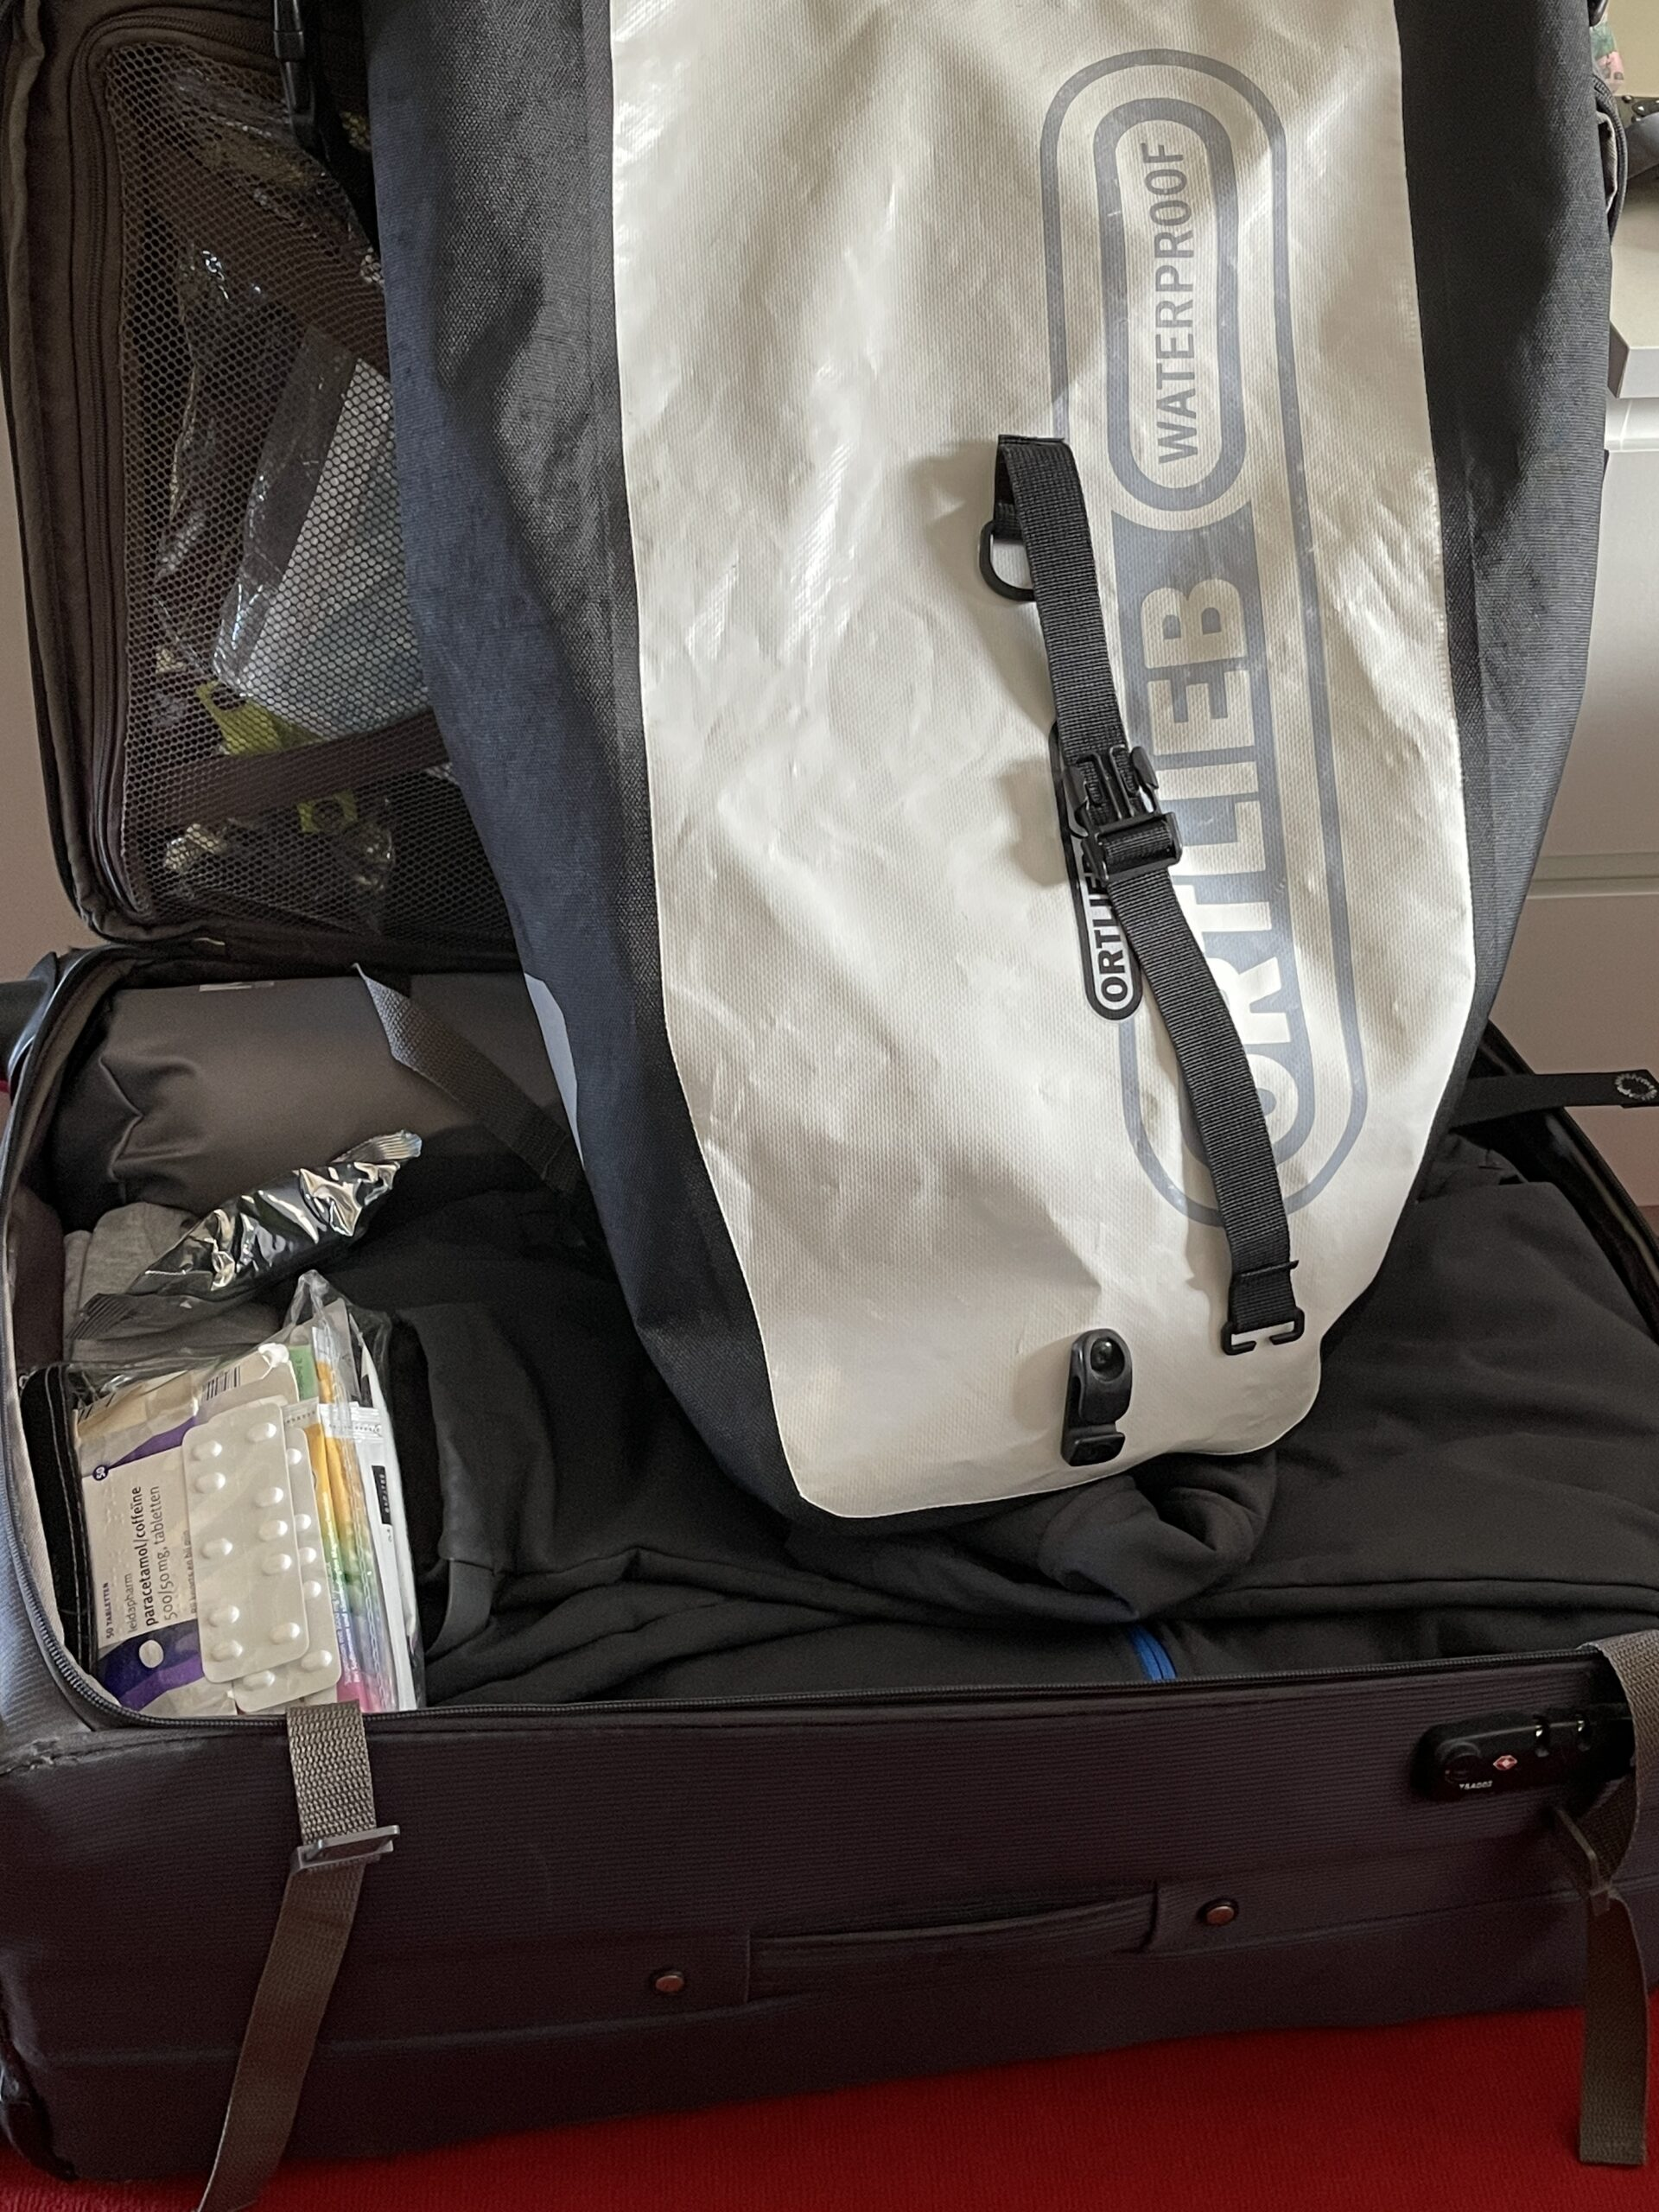 Tag 00: Koffer packen